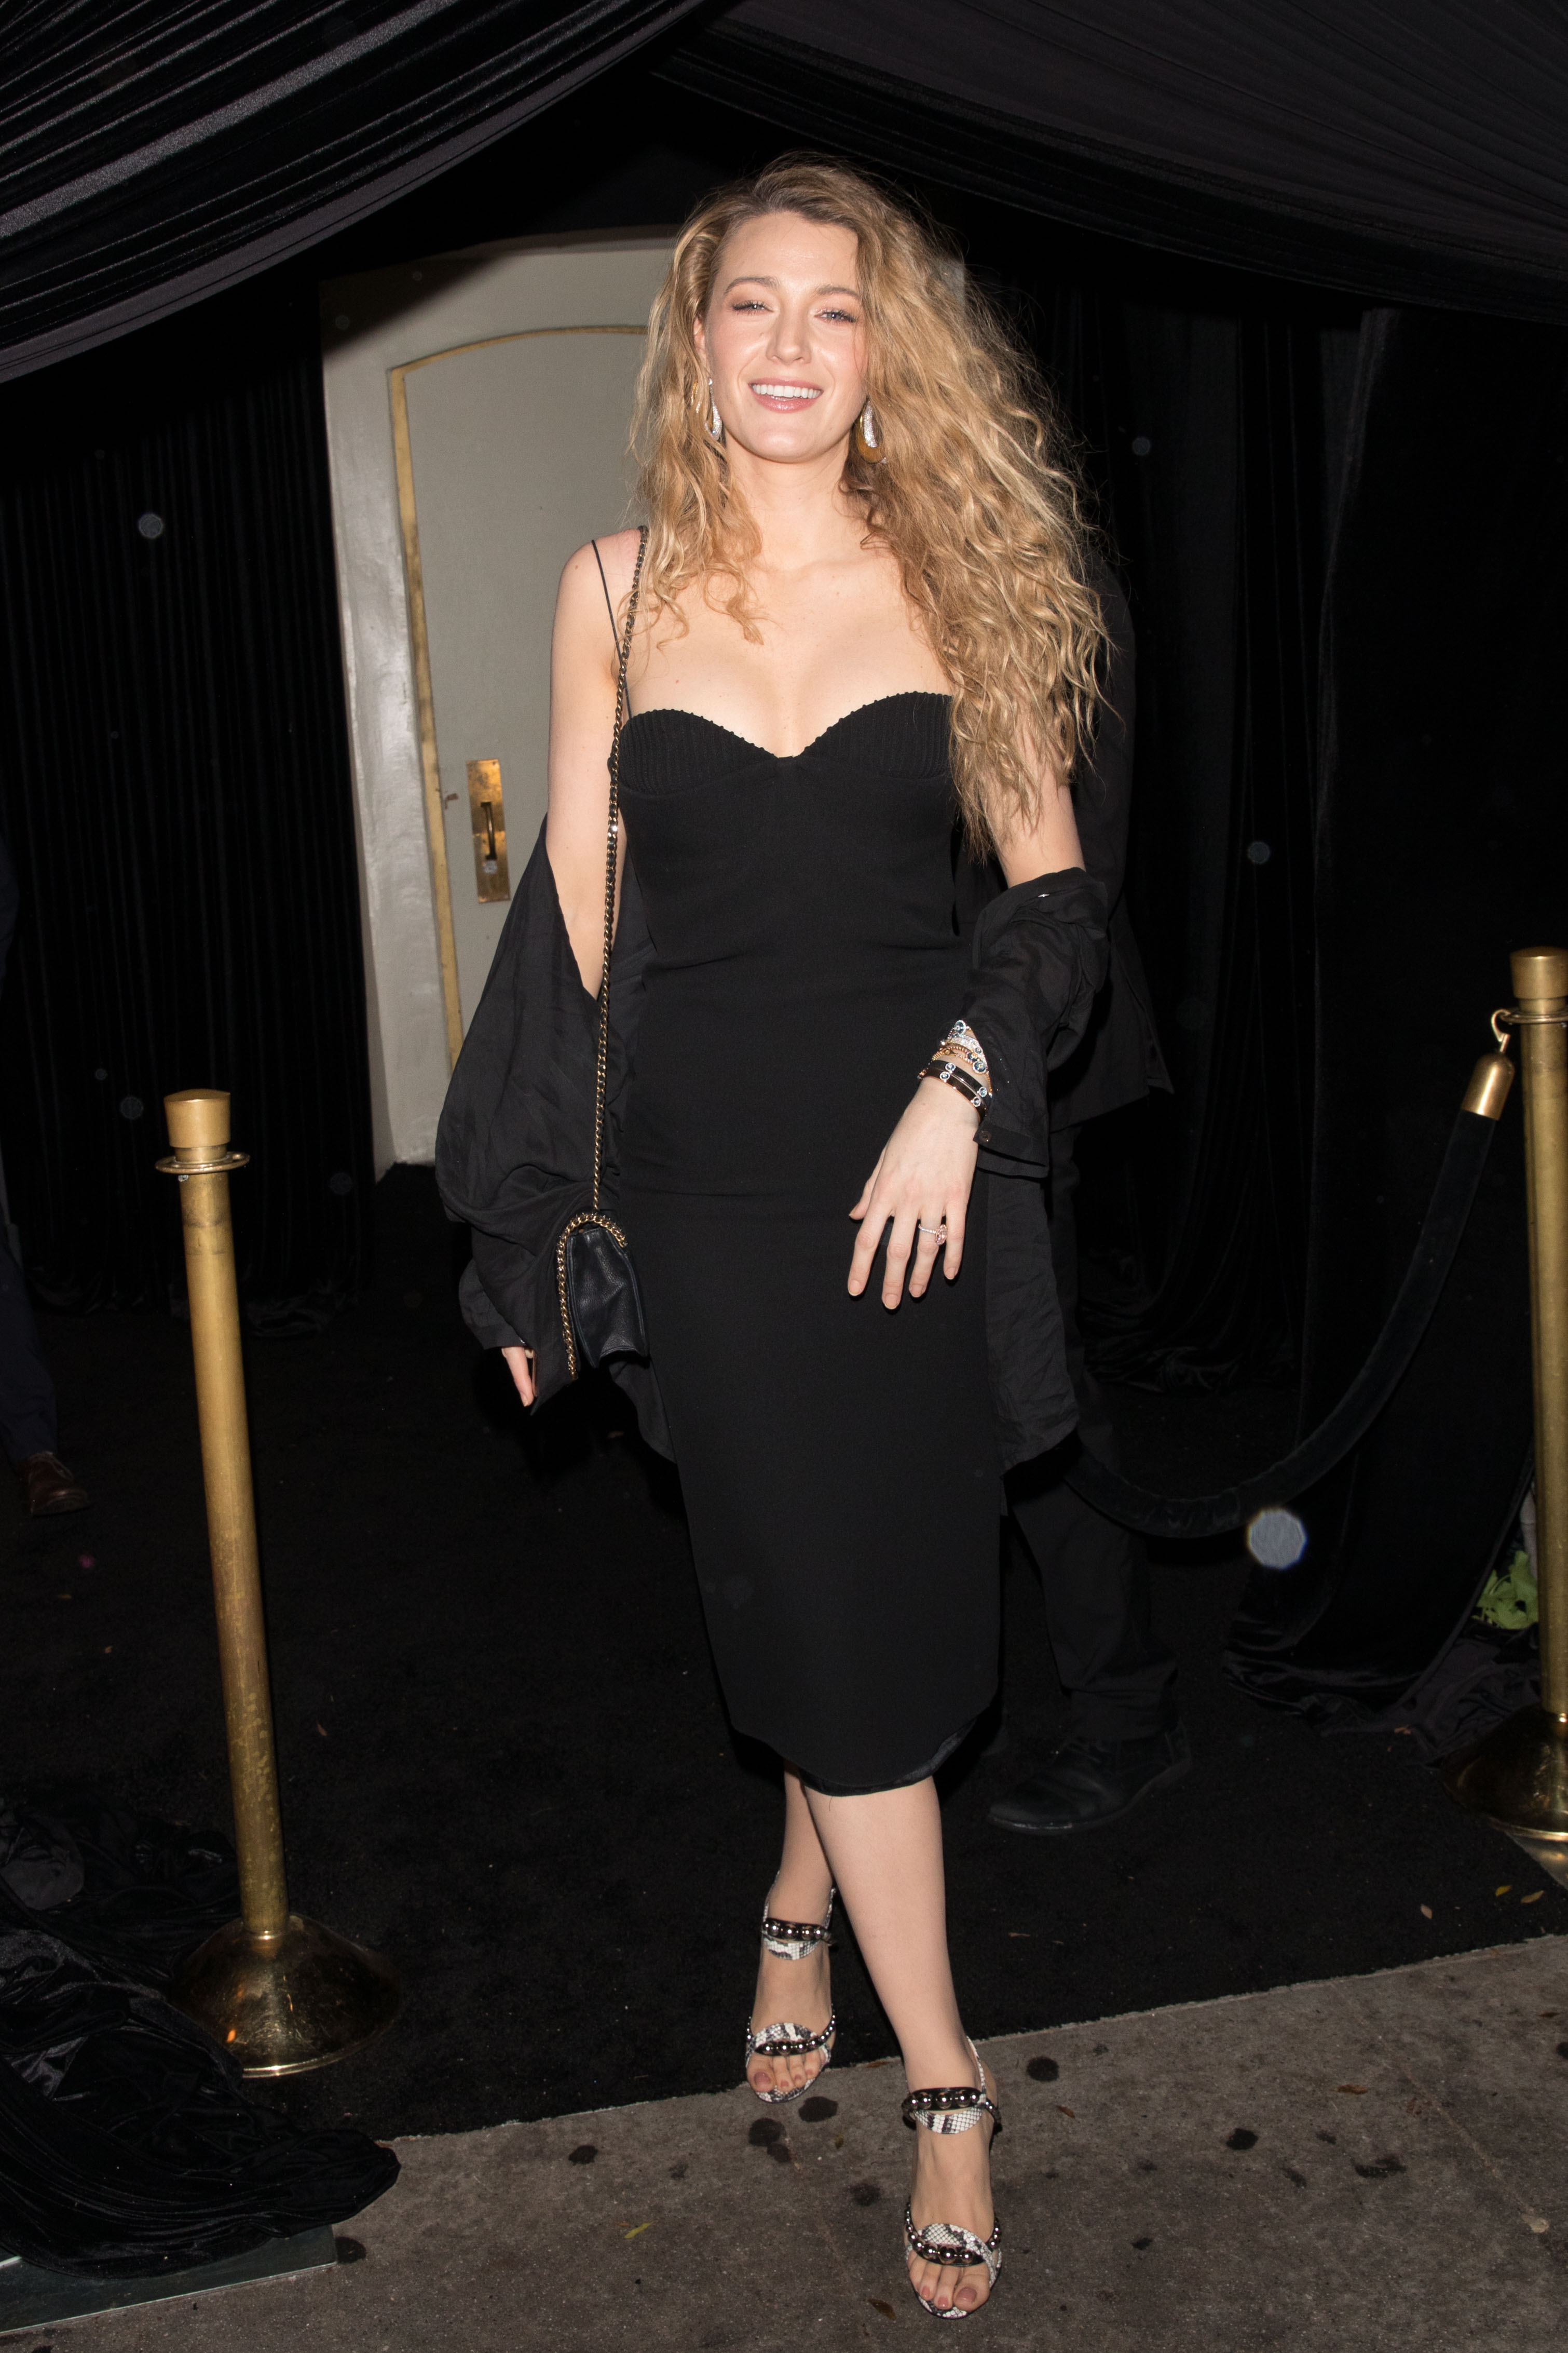 Blake Lively is seen leaving a Lorraine Schwartz event at Delilah in West Hollywood  <P> Pictured: Blake Lively  <B>Ref: SPL1671192  140318  </B><BR/> Picture by: Mr.Canon / Splash News<BR/> </P><P> <B>Splash News and Pictures</B><BR/> Los Angeles:	310-821-2666<BR/> New York:	212-619-2666<BR/> London:	870-934-2666<BR/> <span id=